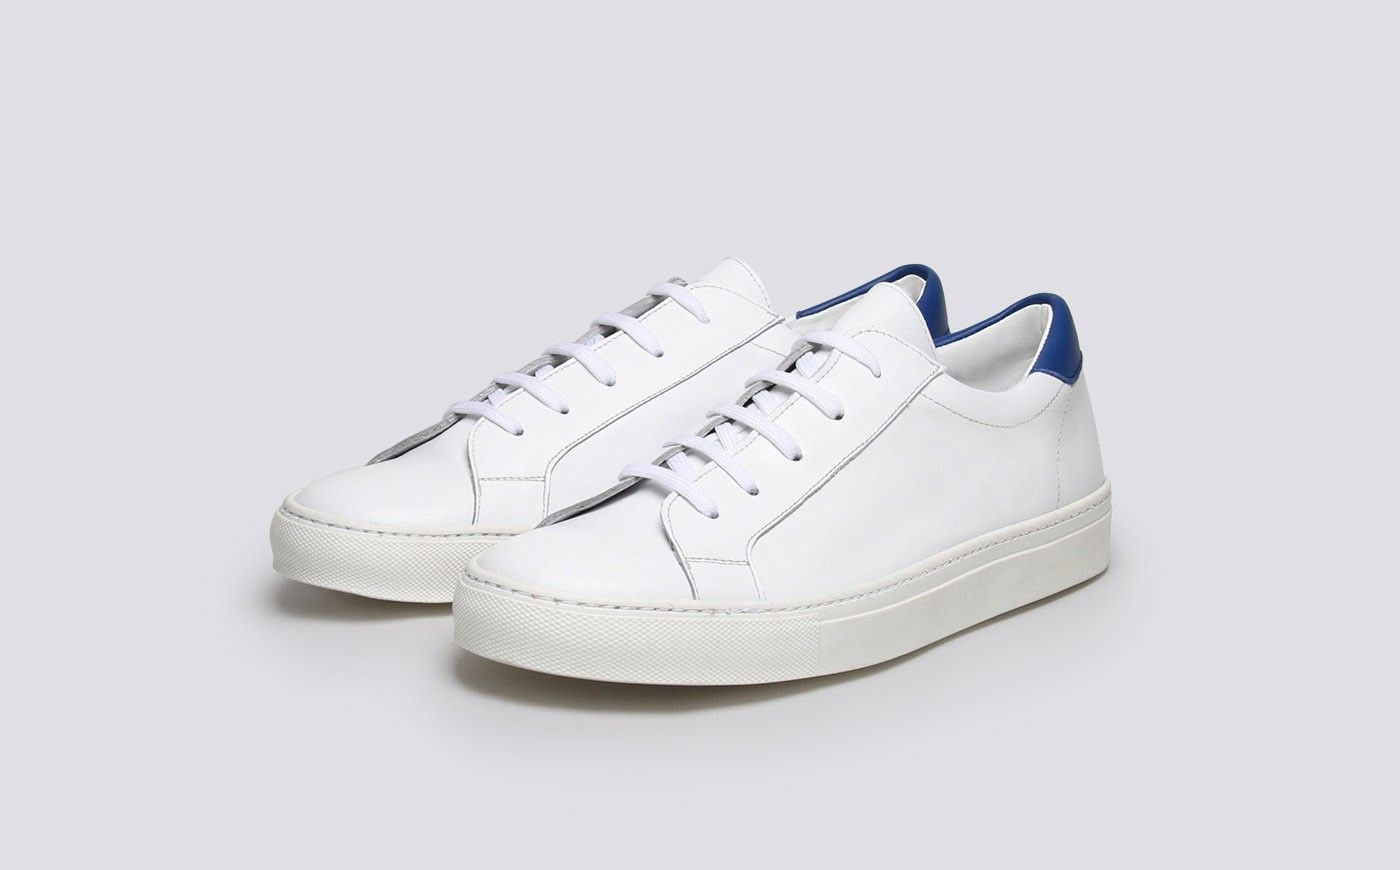 Trainers In White Leather - White Grenson ljzUvLk09